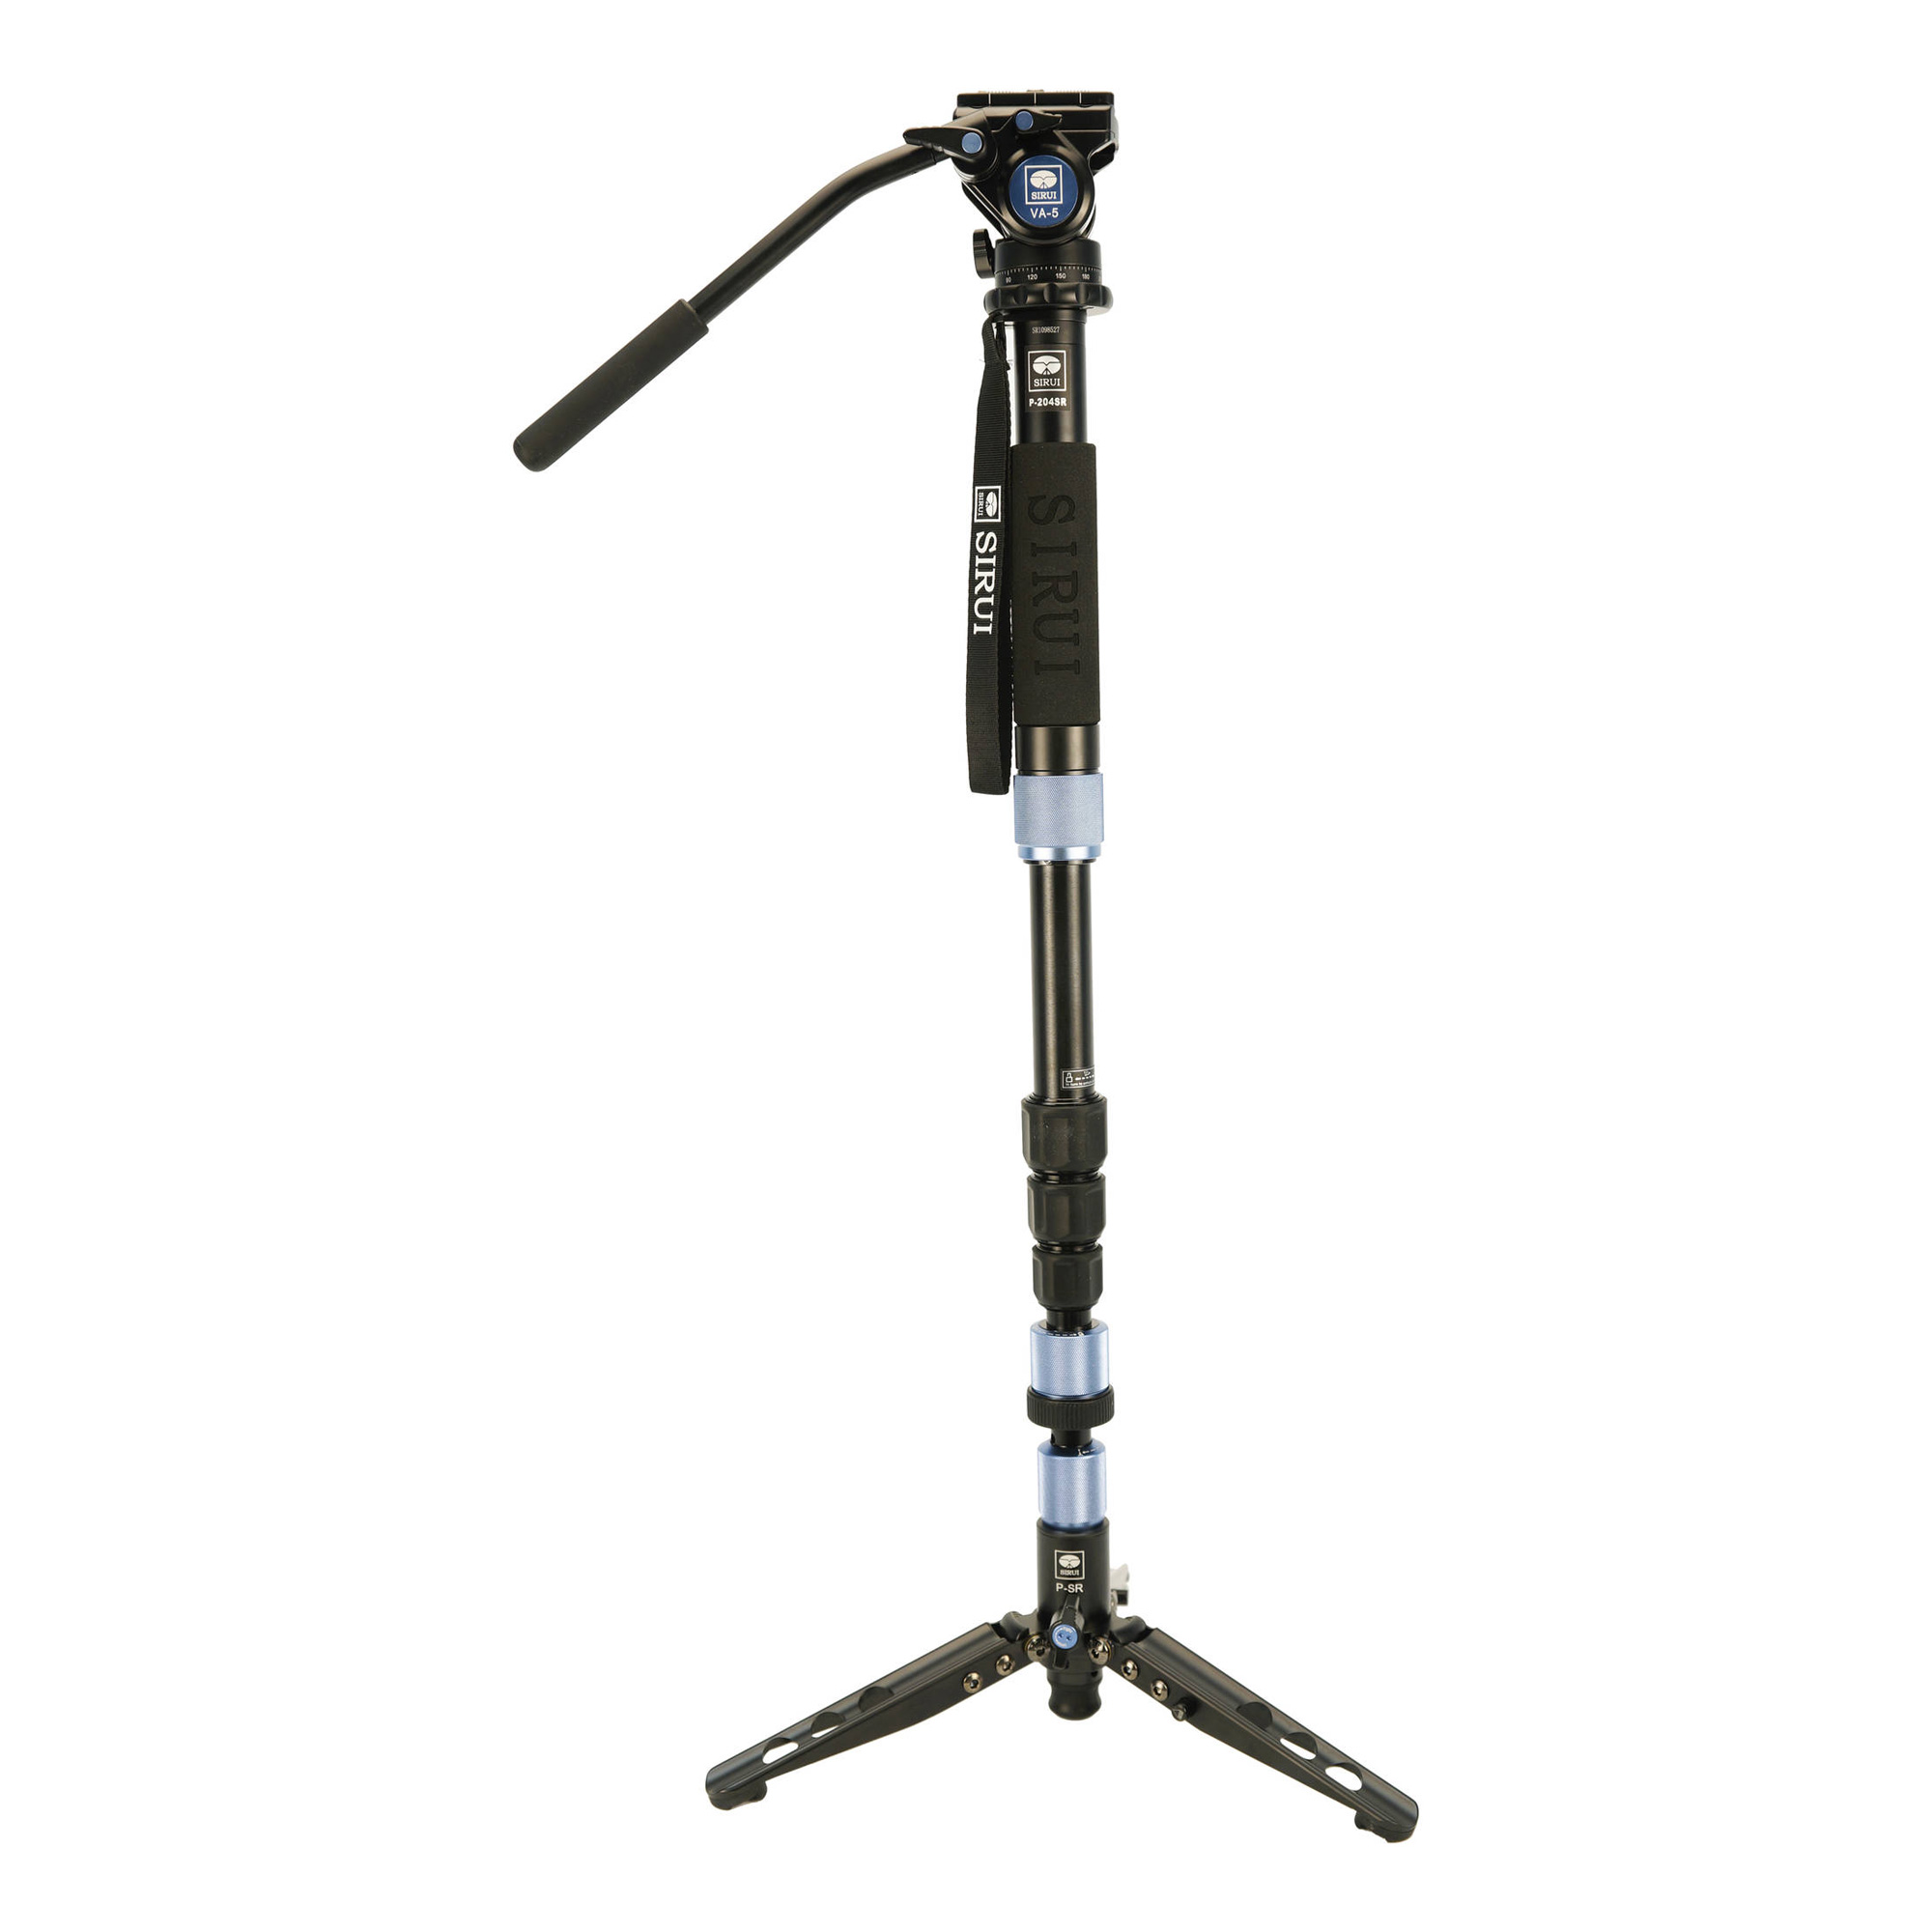 SIRUI VH-350 arm compatible with large lenses video